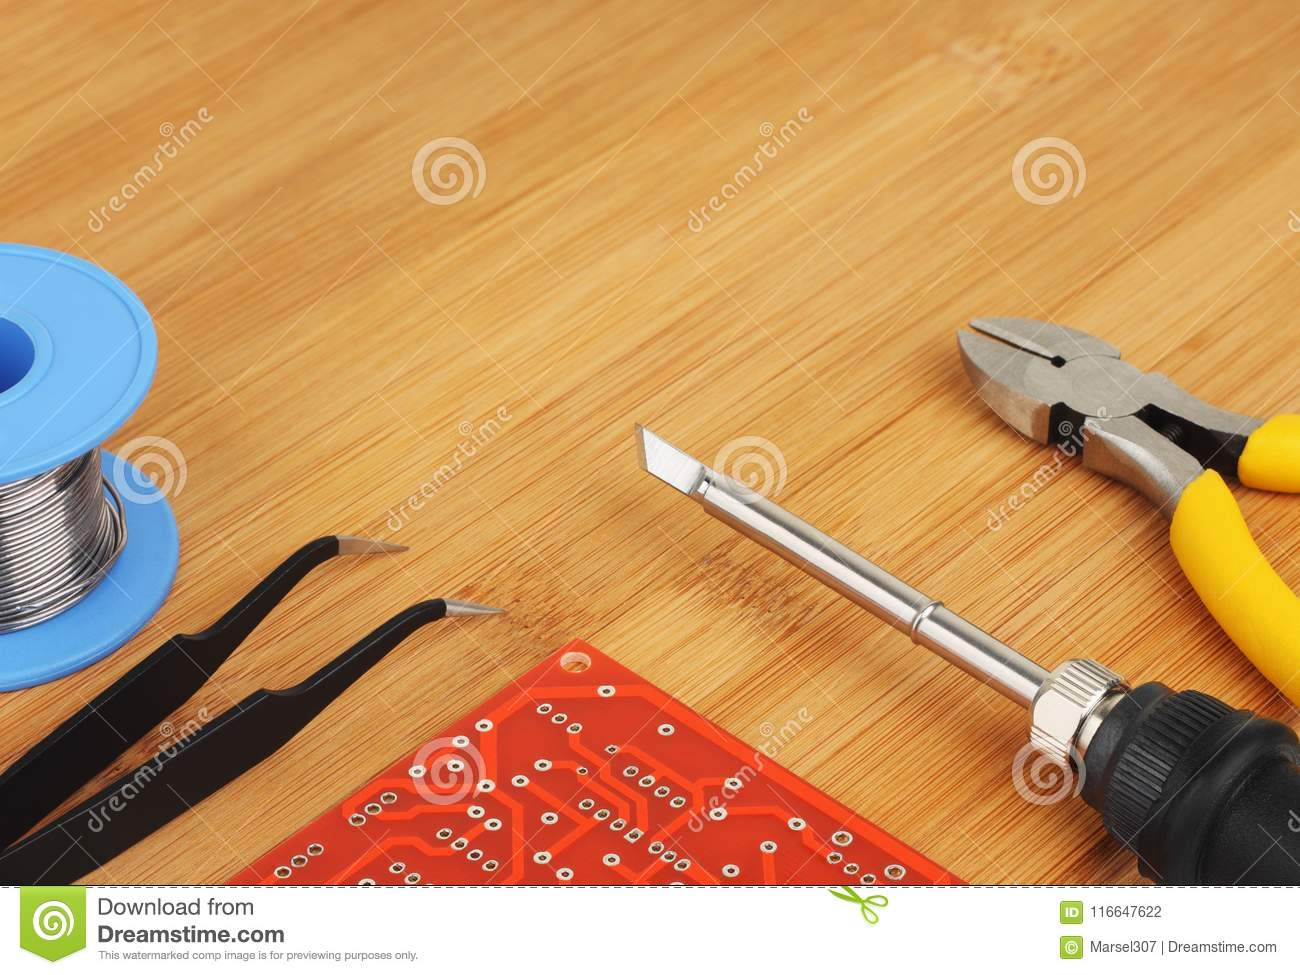 Pcb And Tools Stock Photo Image Of Part Cutting Black 116647622 Circuit Board Cutter Images